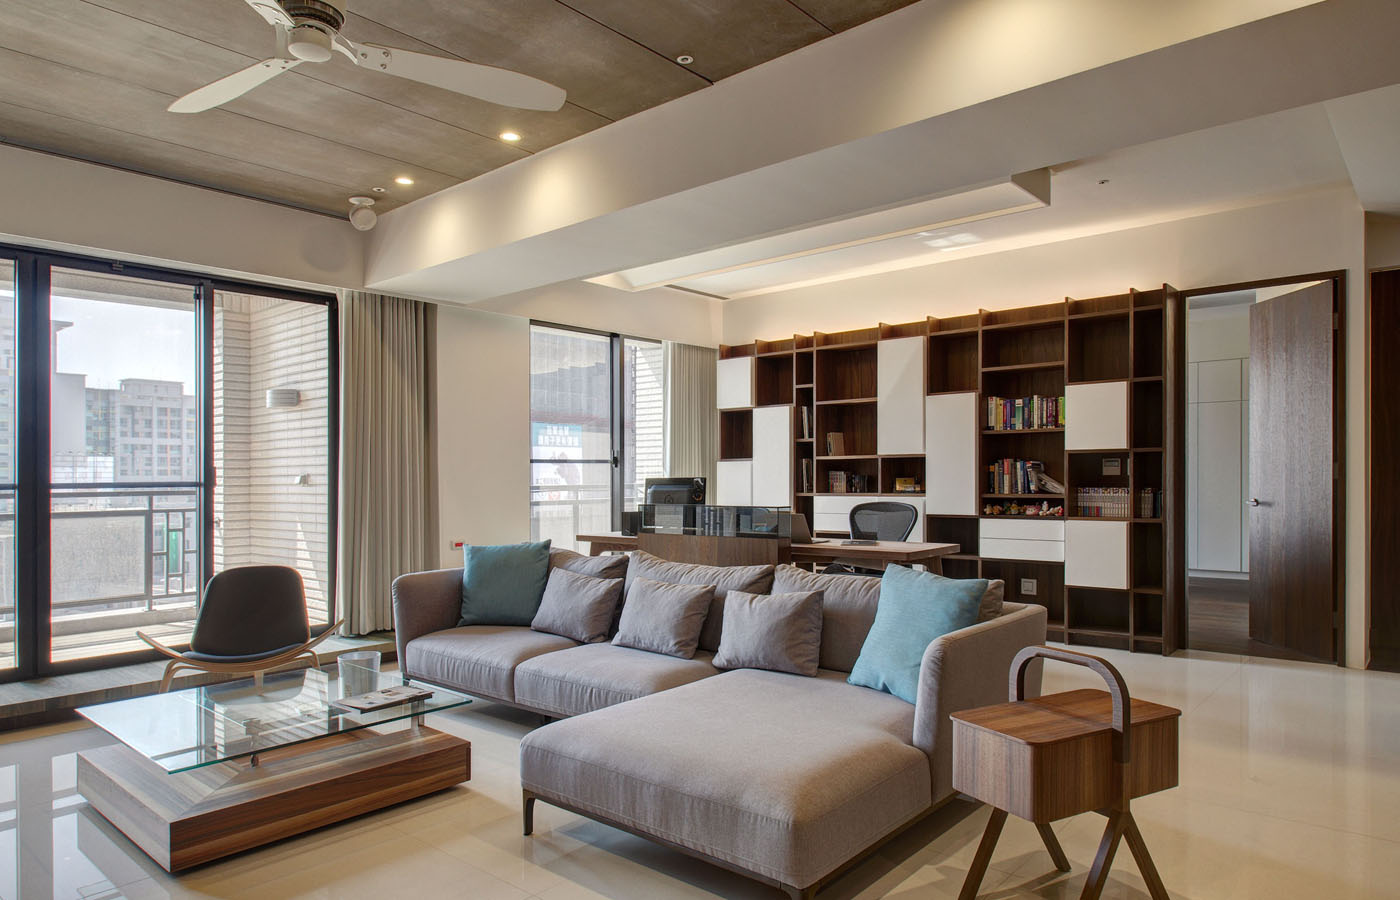 Modern apartment designs by phase6 design studio for The model apartment